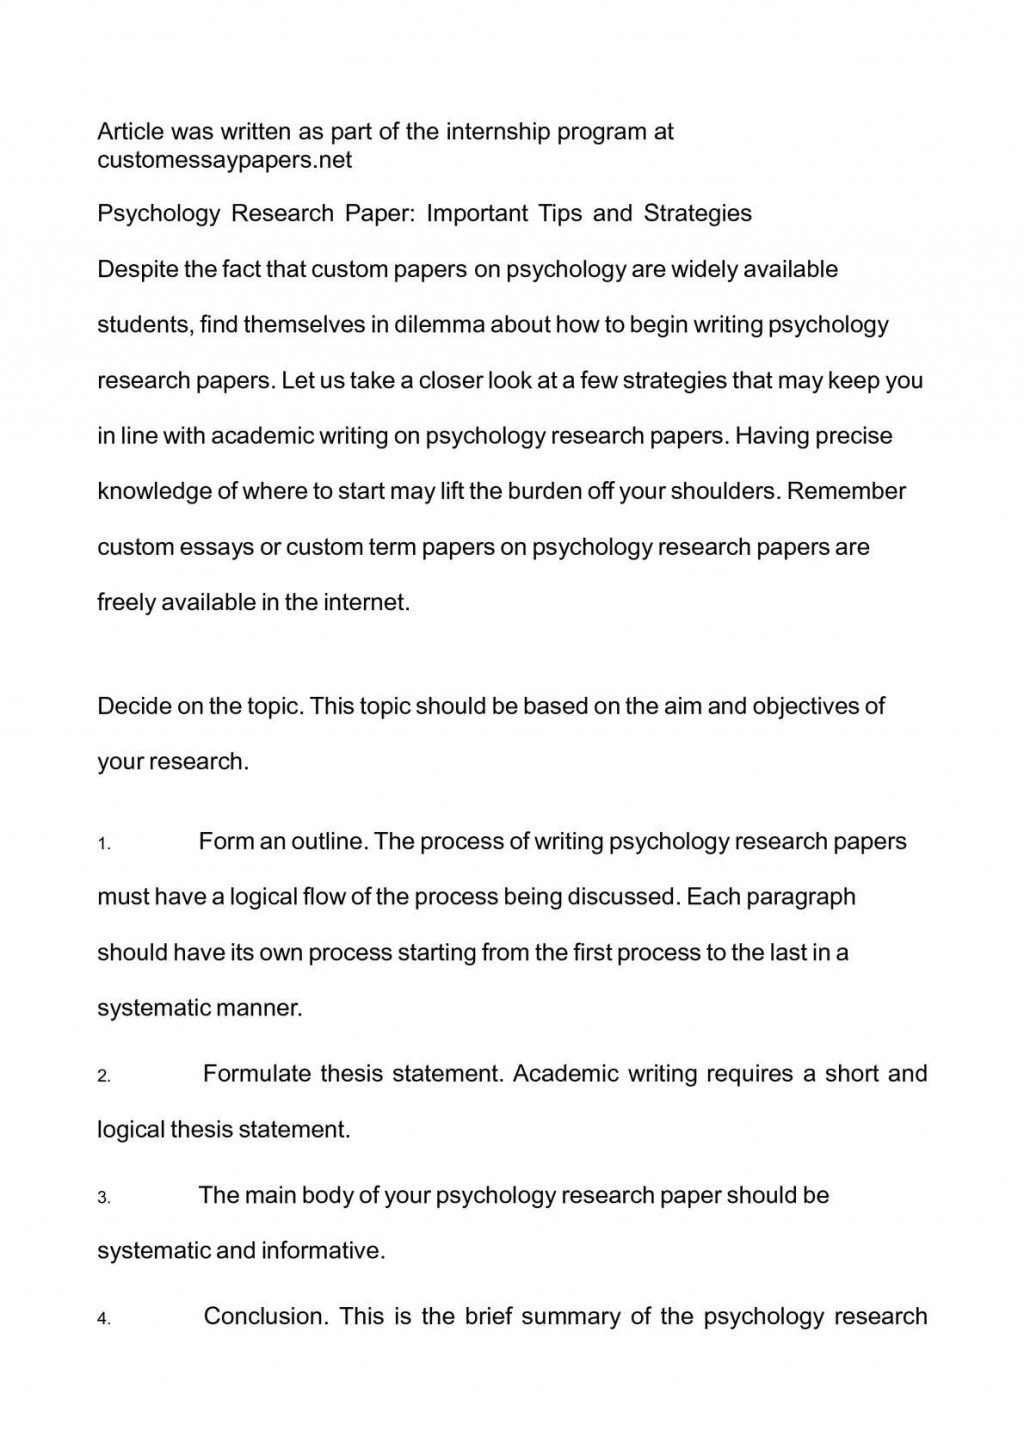 017 P1 Research Paper Psychology Topics Awesome List Topic Ideas Large